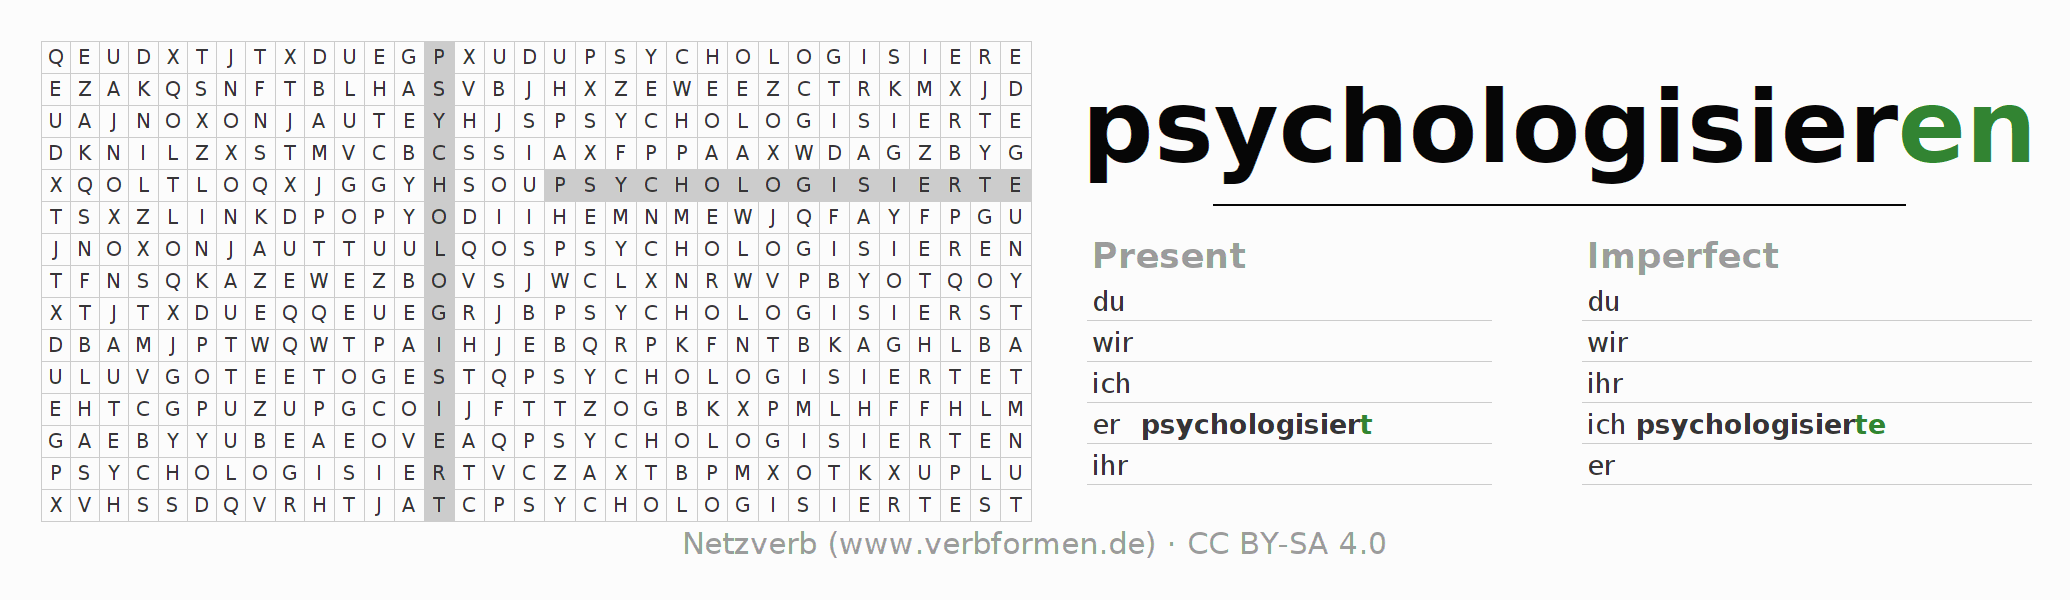 Word search puzzle for the conjugation of the verb psychologisieren